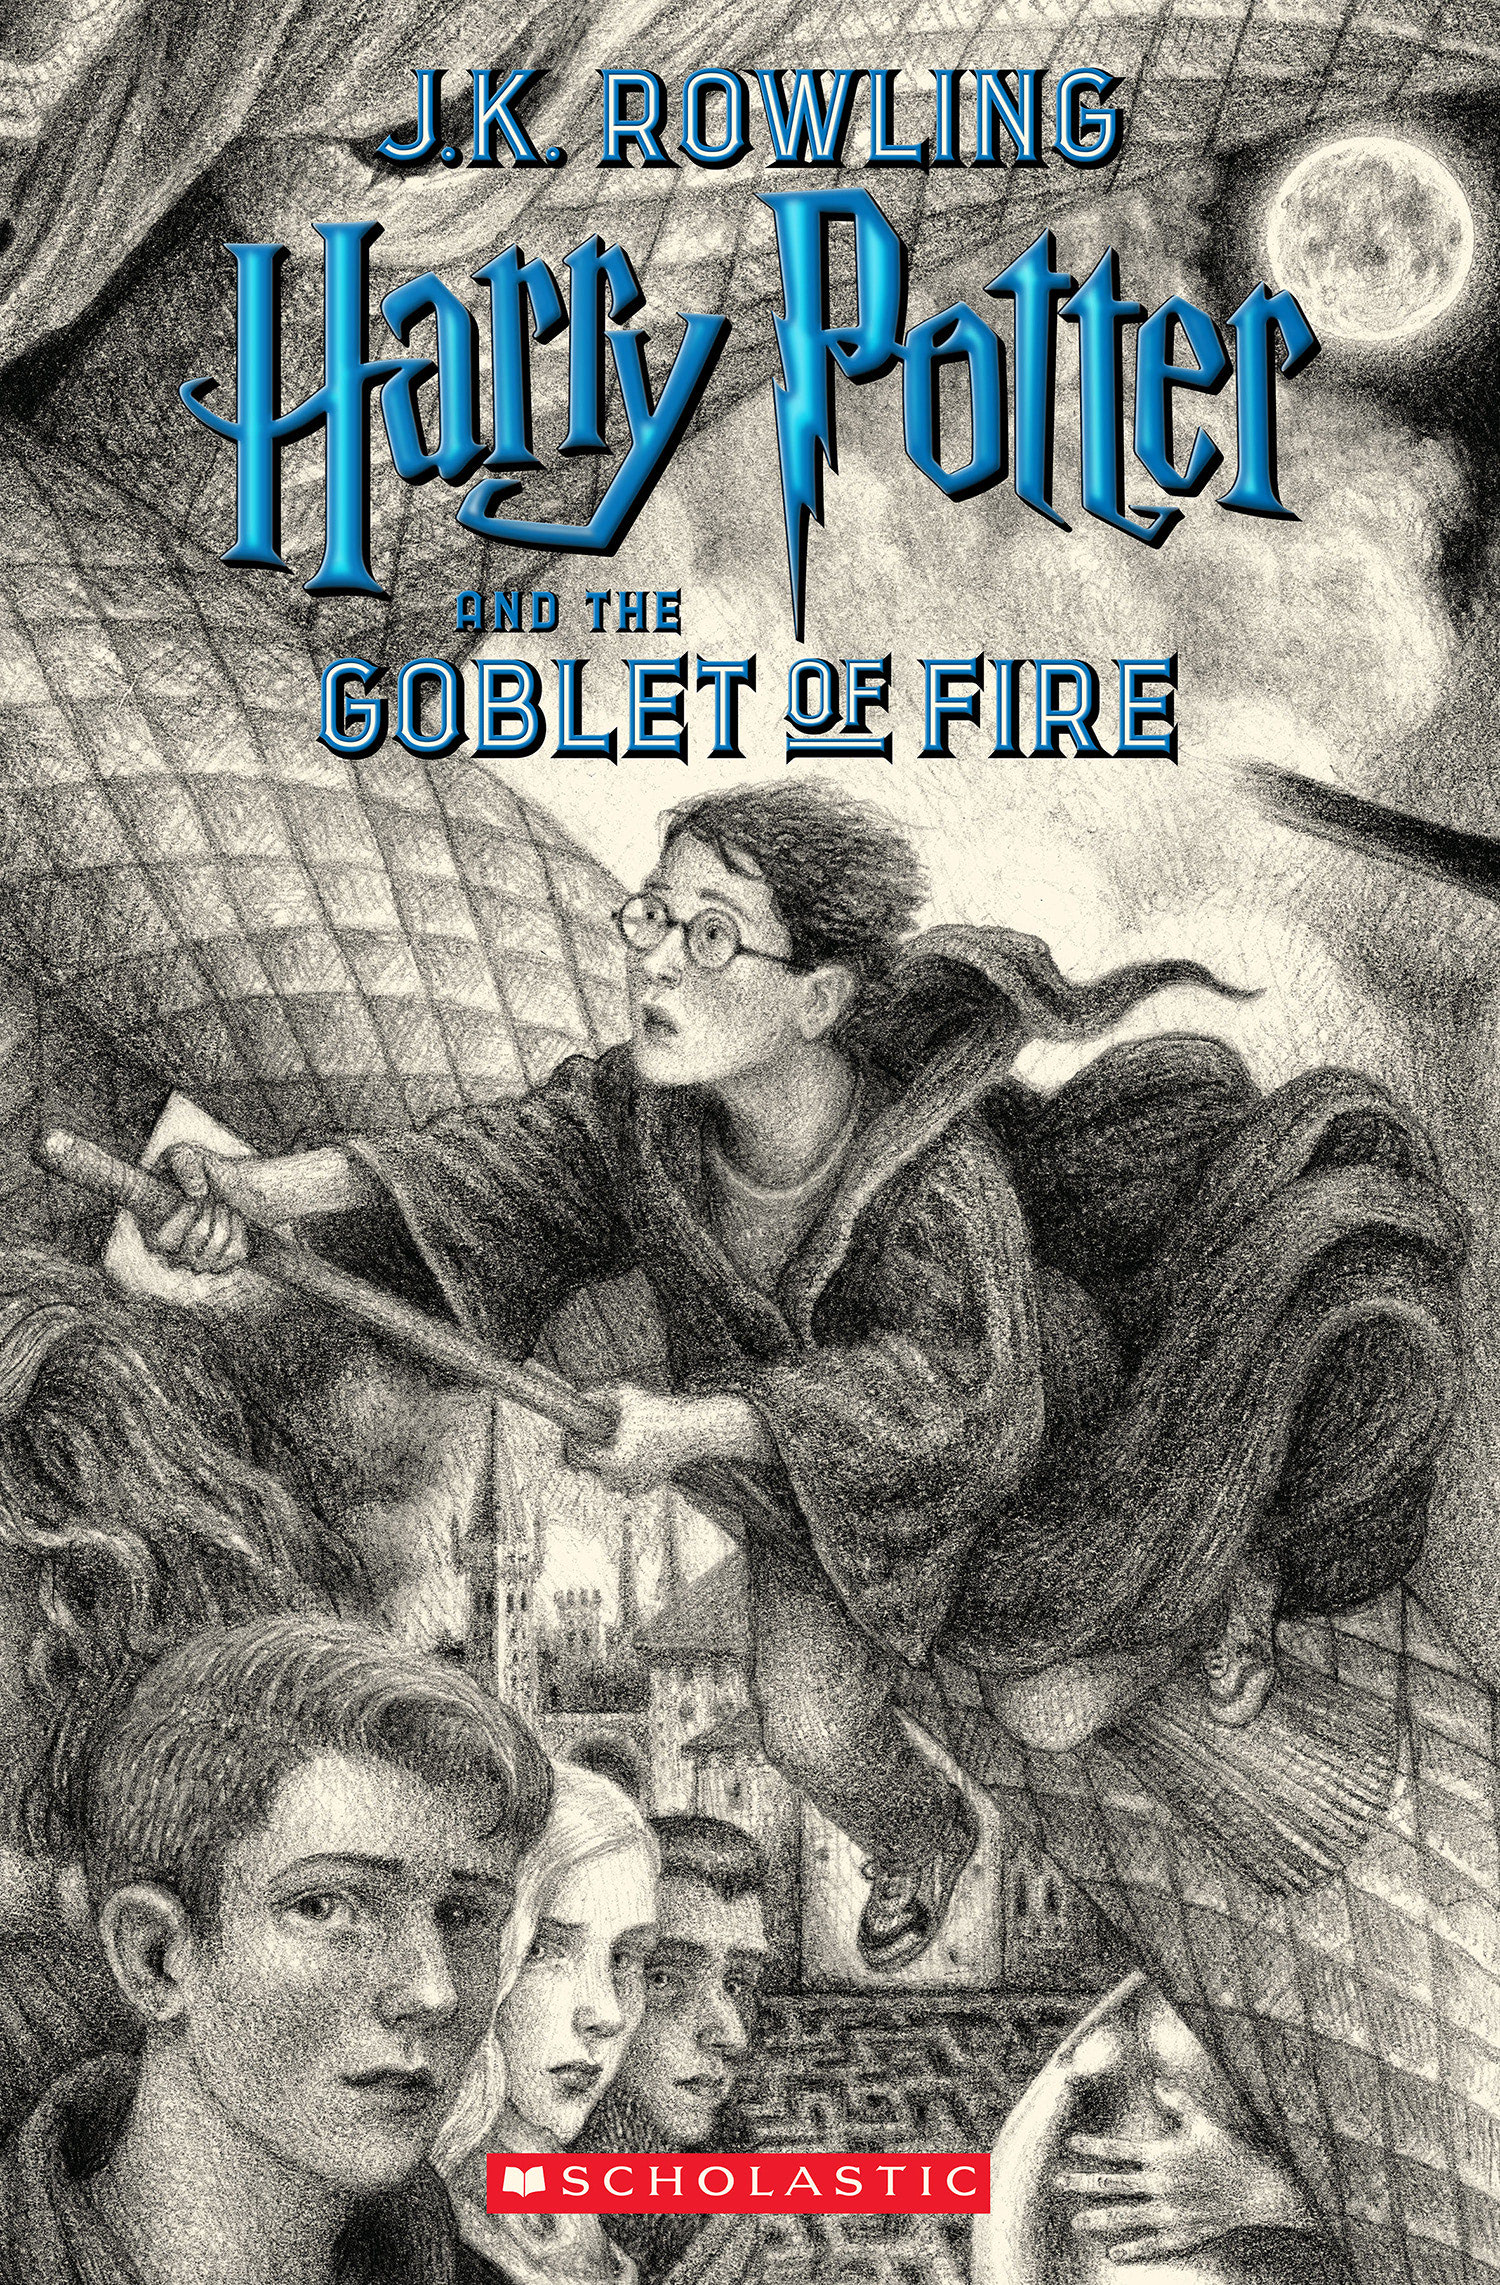 'Goblet of Fire' US 20th anniversary edition